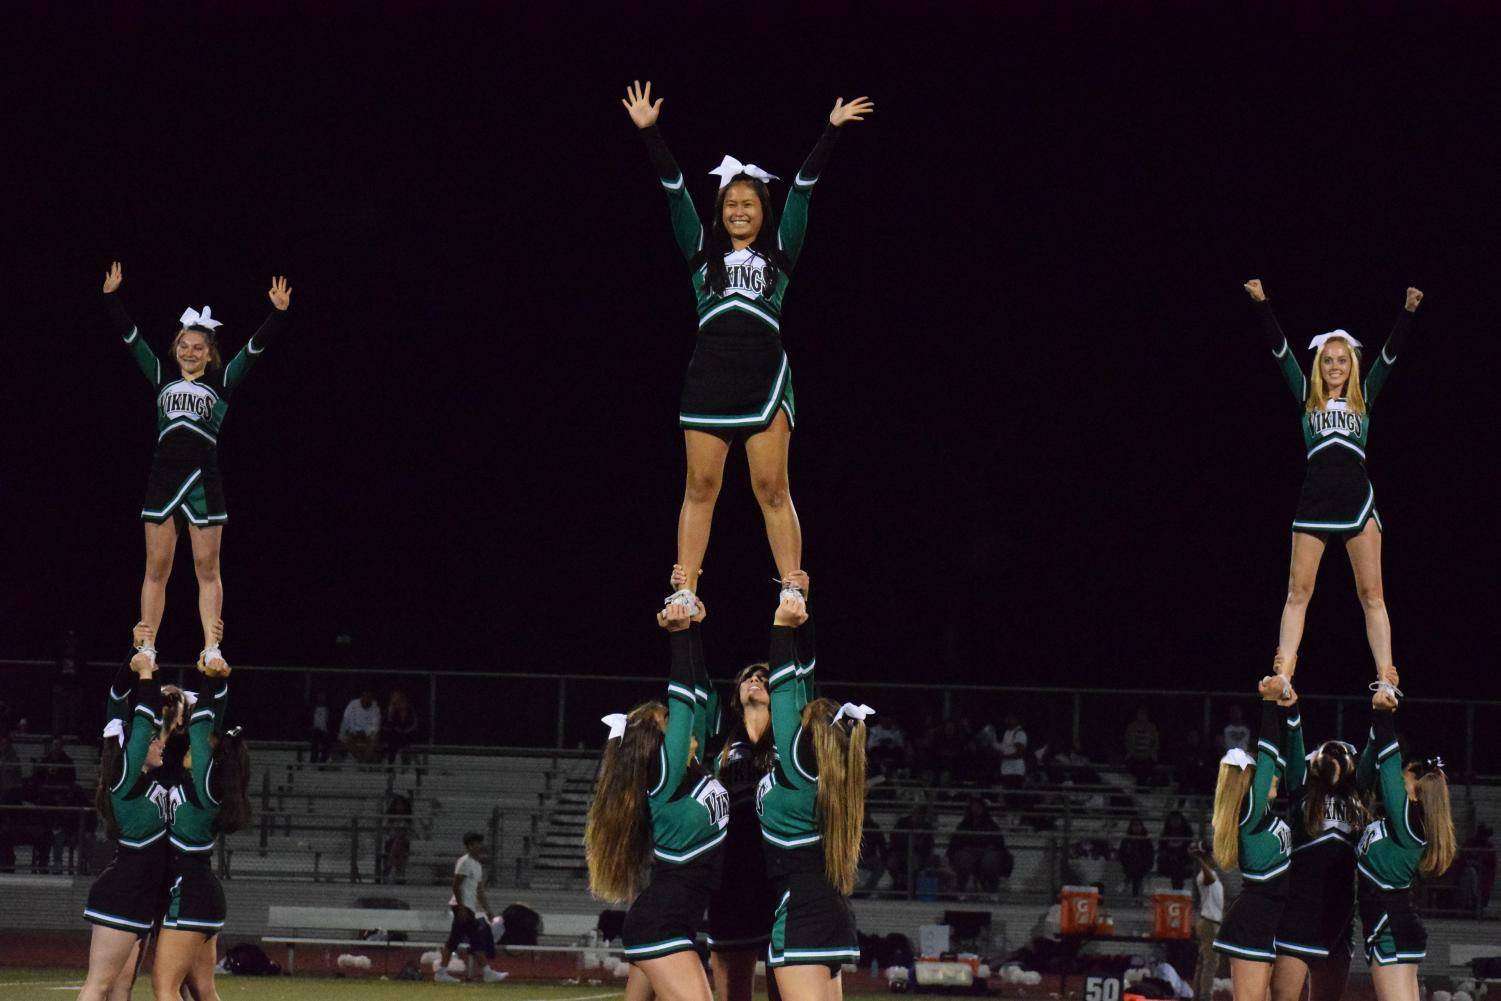 """The Palo Alto High School varsity cheer team performs at a football game in September of 2019. The team will participate in the United Spirit Association national competition Feb 14 to Feb 16 after qualifying in Oct. """"My expectations for my team in nationals is that we bring everything to the mat and have no regrets,"""" senior captain Tati Taylor stated over text message. """"All of our hard work is paying off!"""" Photo: Amy Yu"""